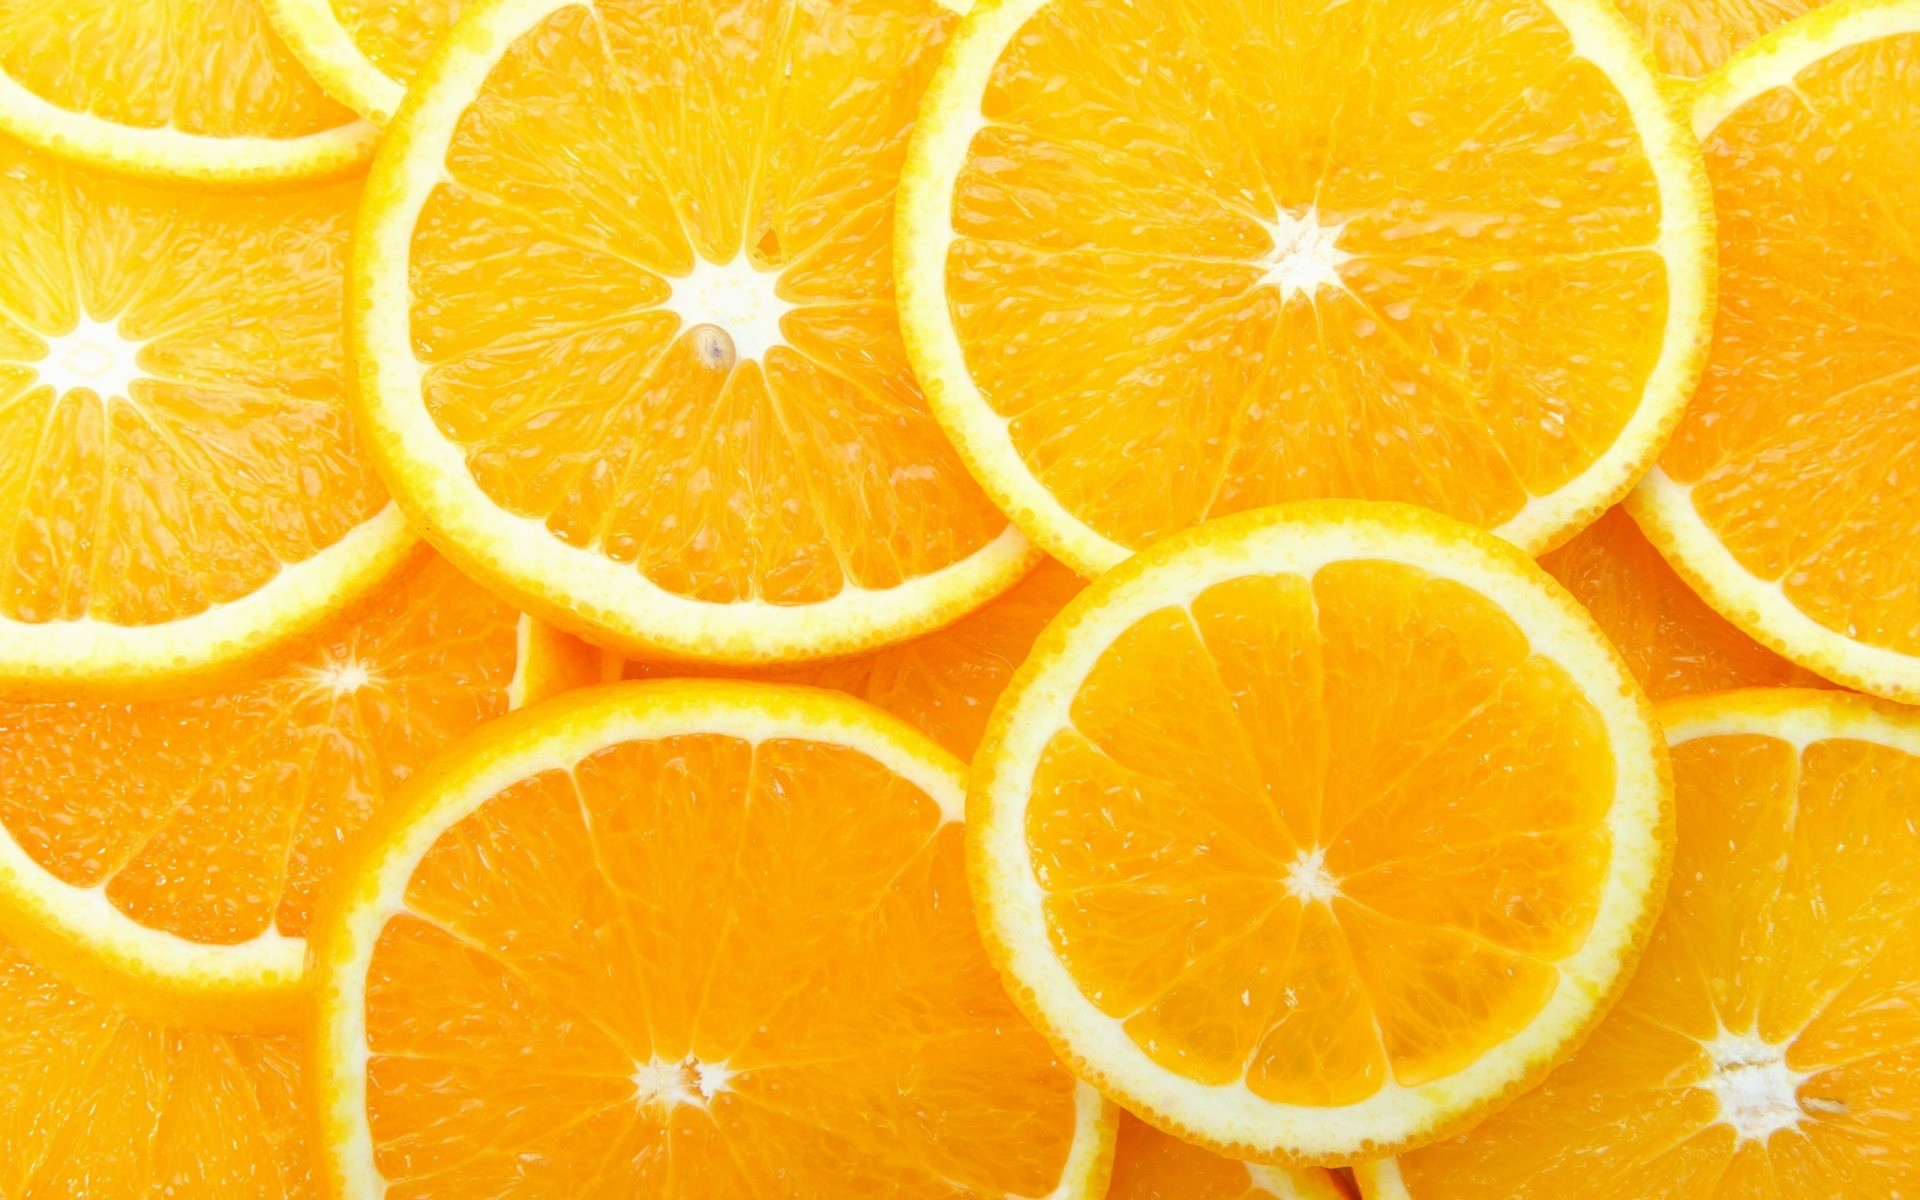 1920x1200 Download the following Orange Fruit Slices Wallpaper 1466 by clicking the  button positioned underneath the ""